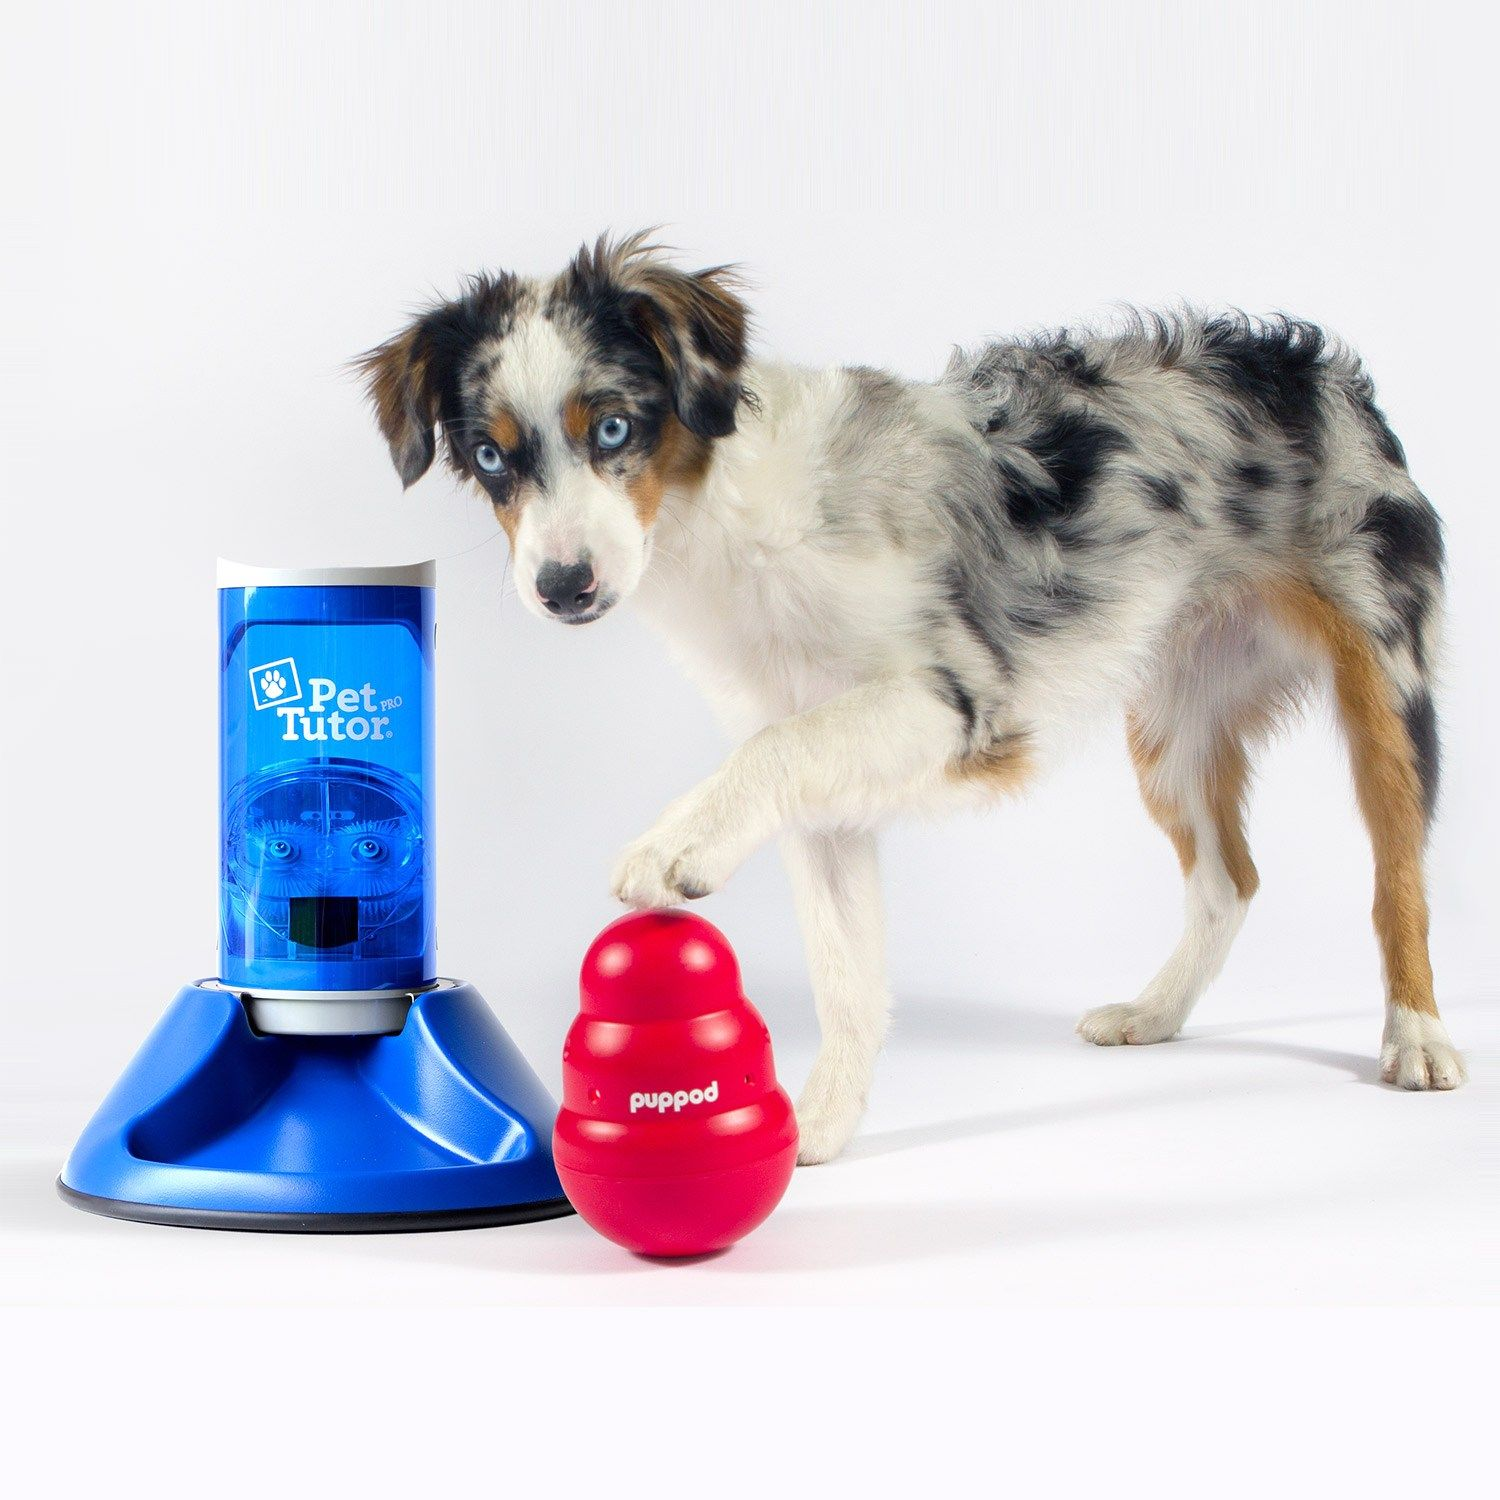 Puppid A Gaming Learning And Social Platform For Dogs And Pet